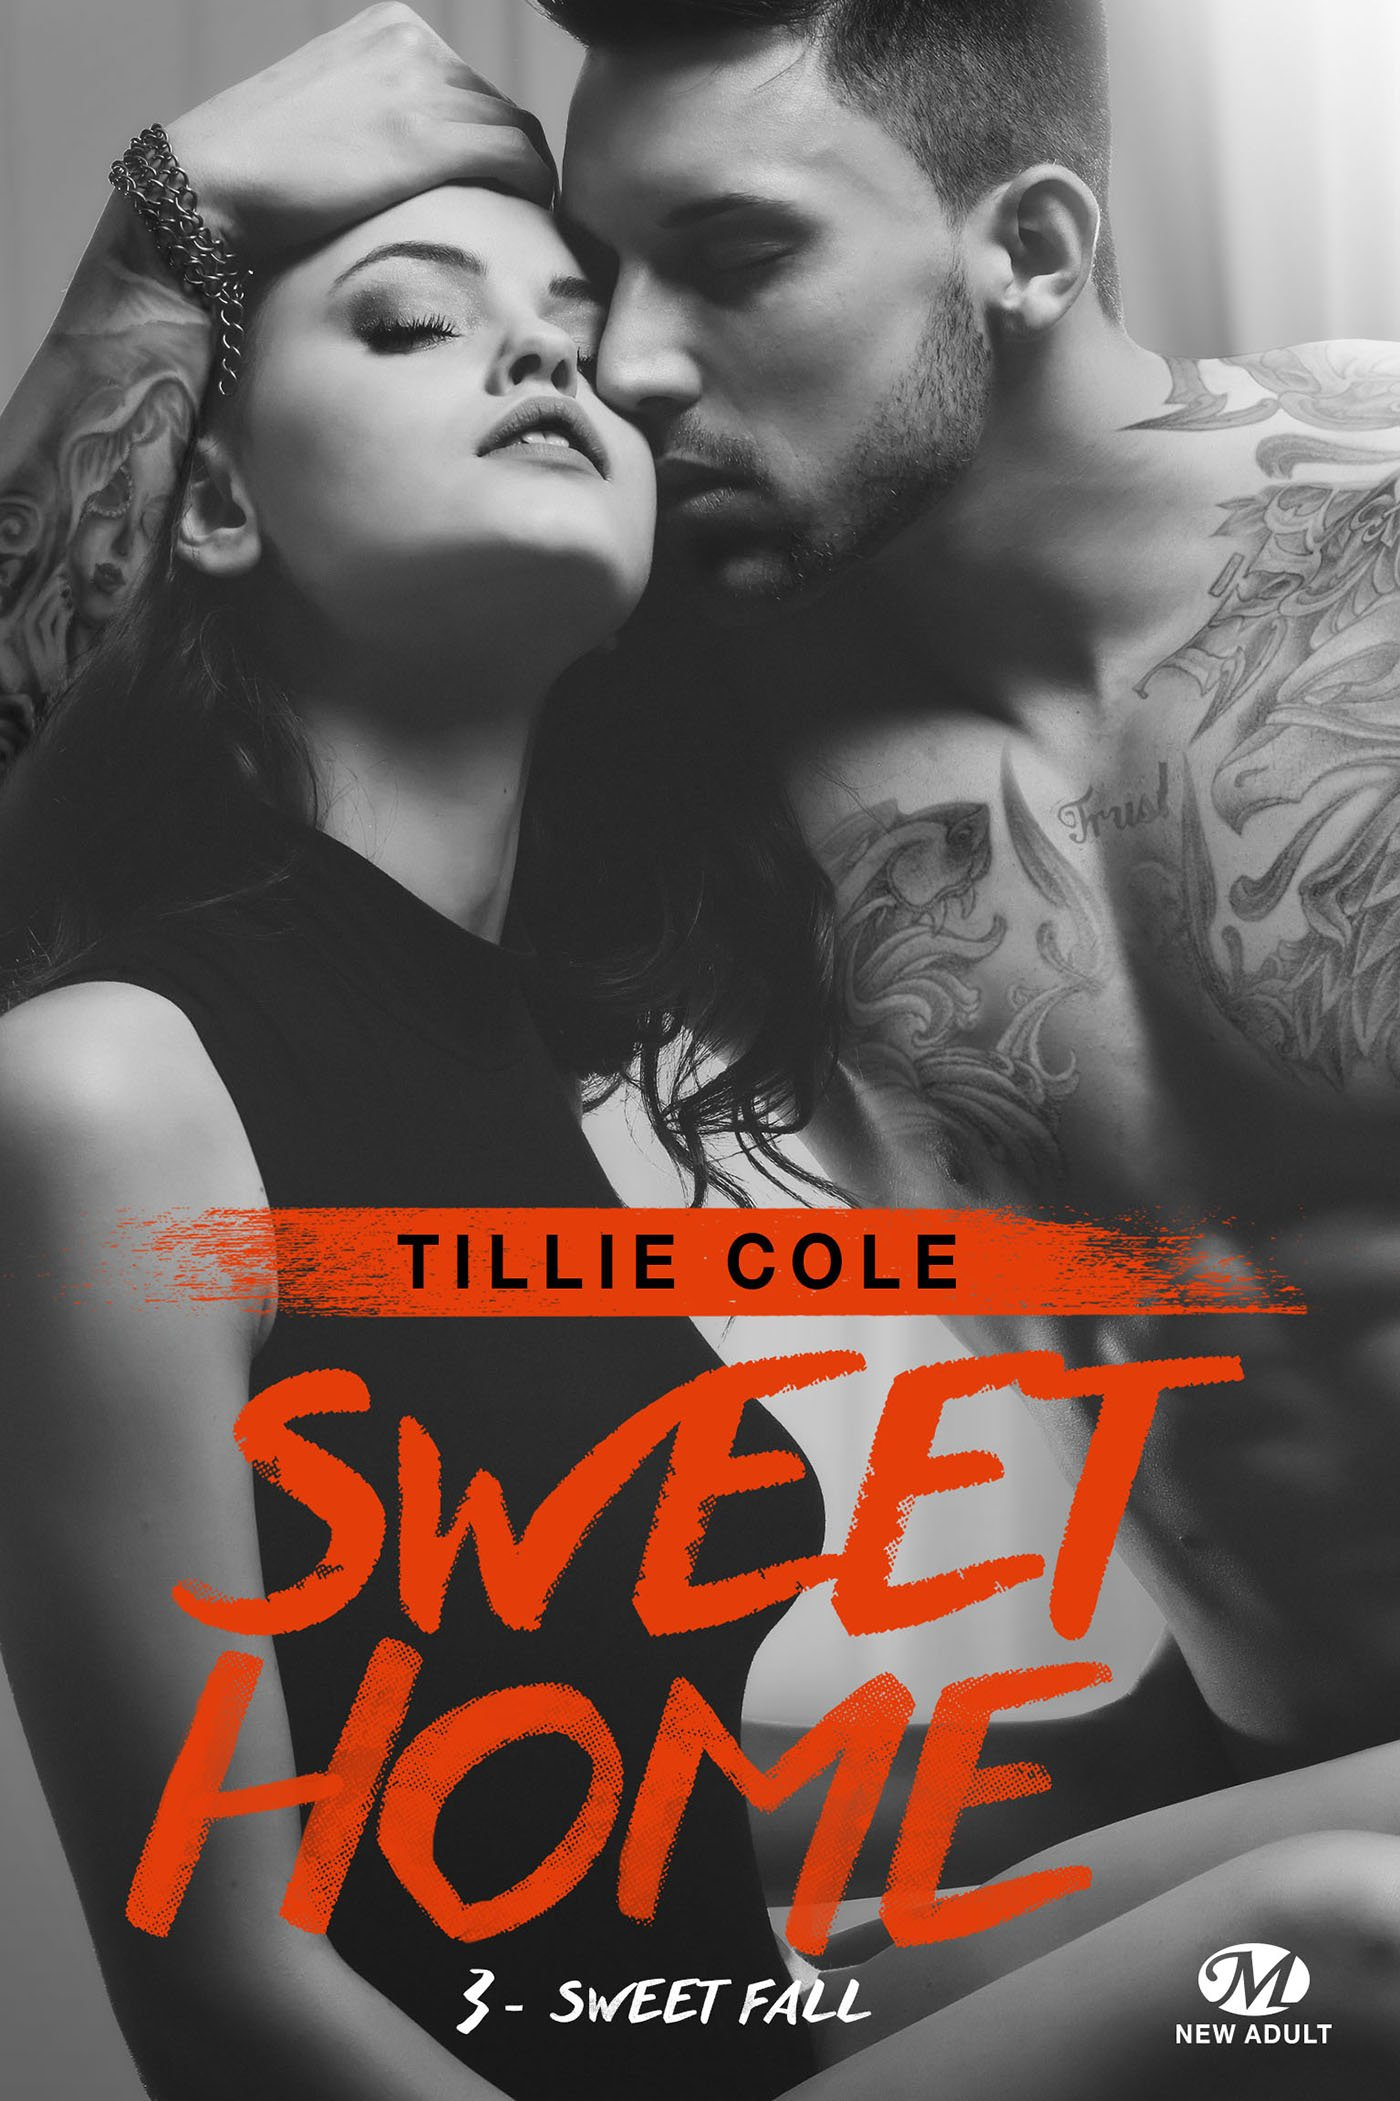 Sweet home, tome 3 : Sweet fall de Tillie Cole